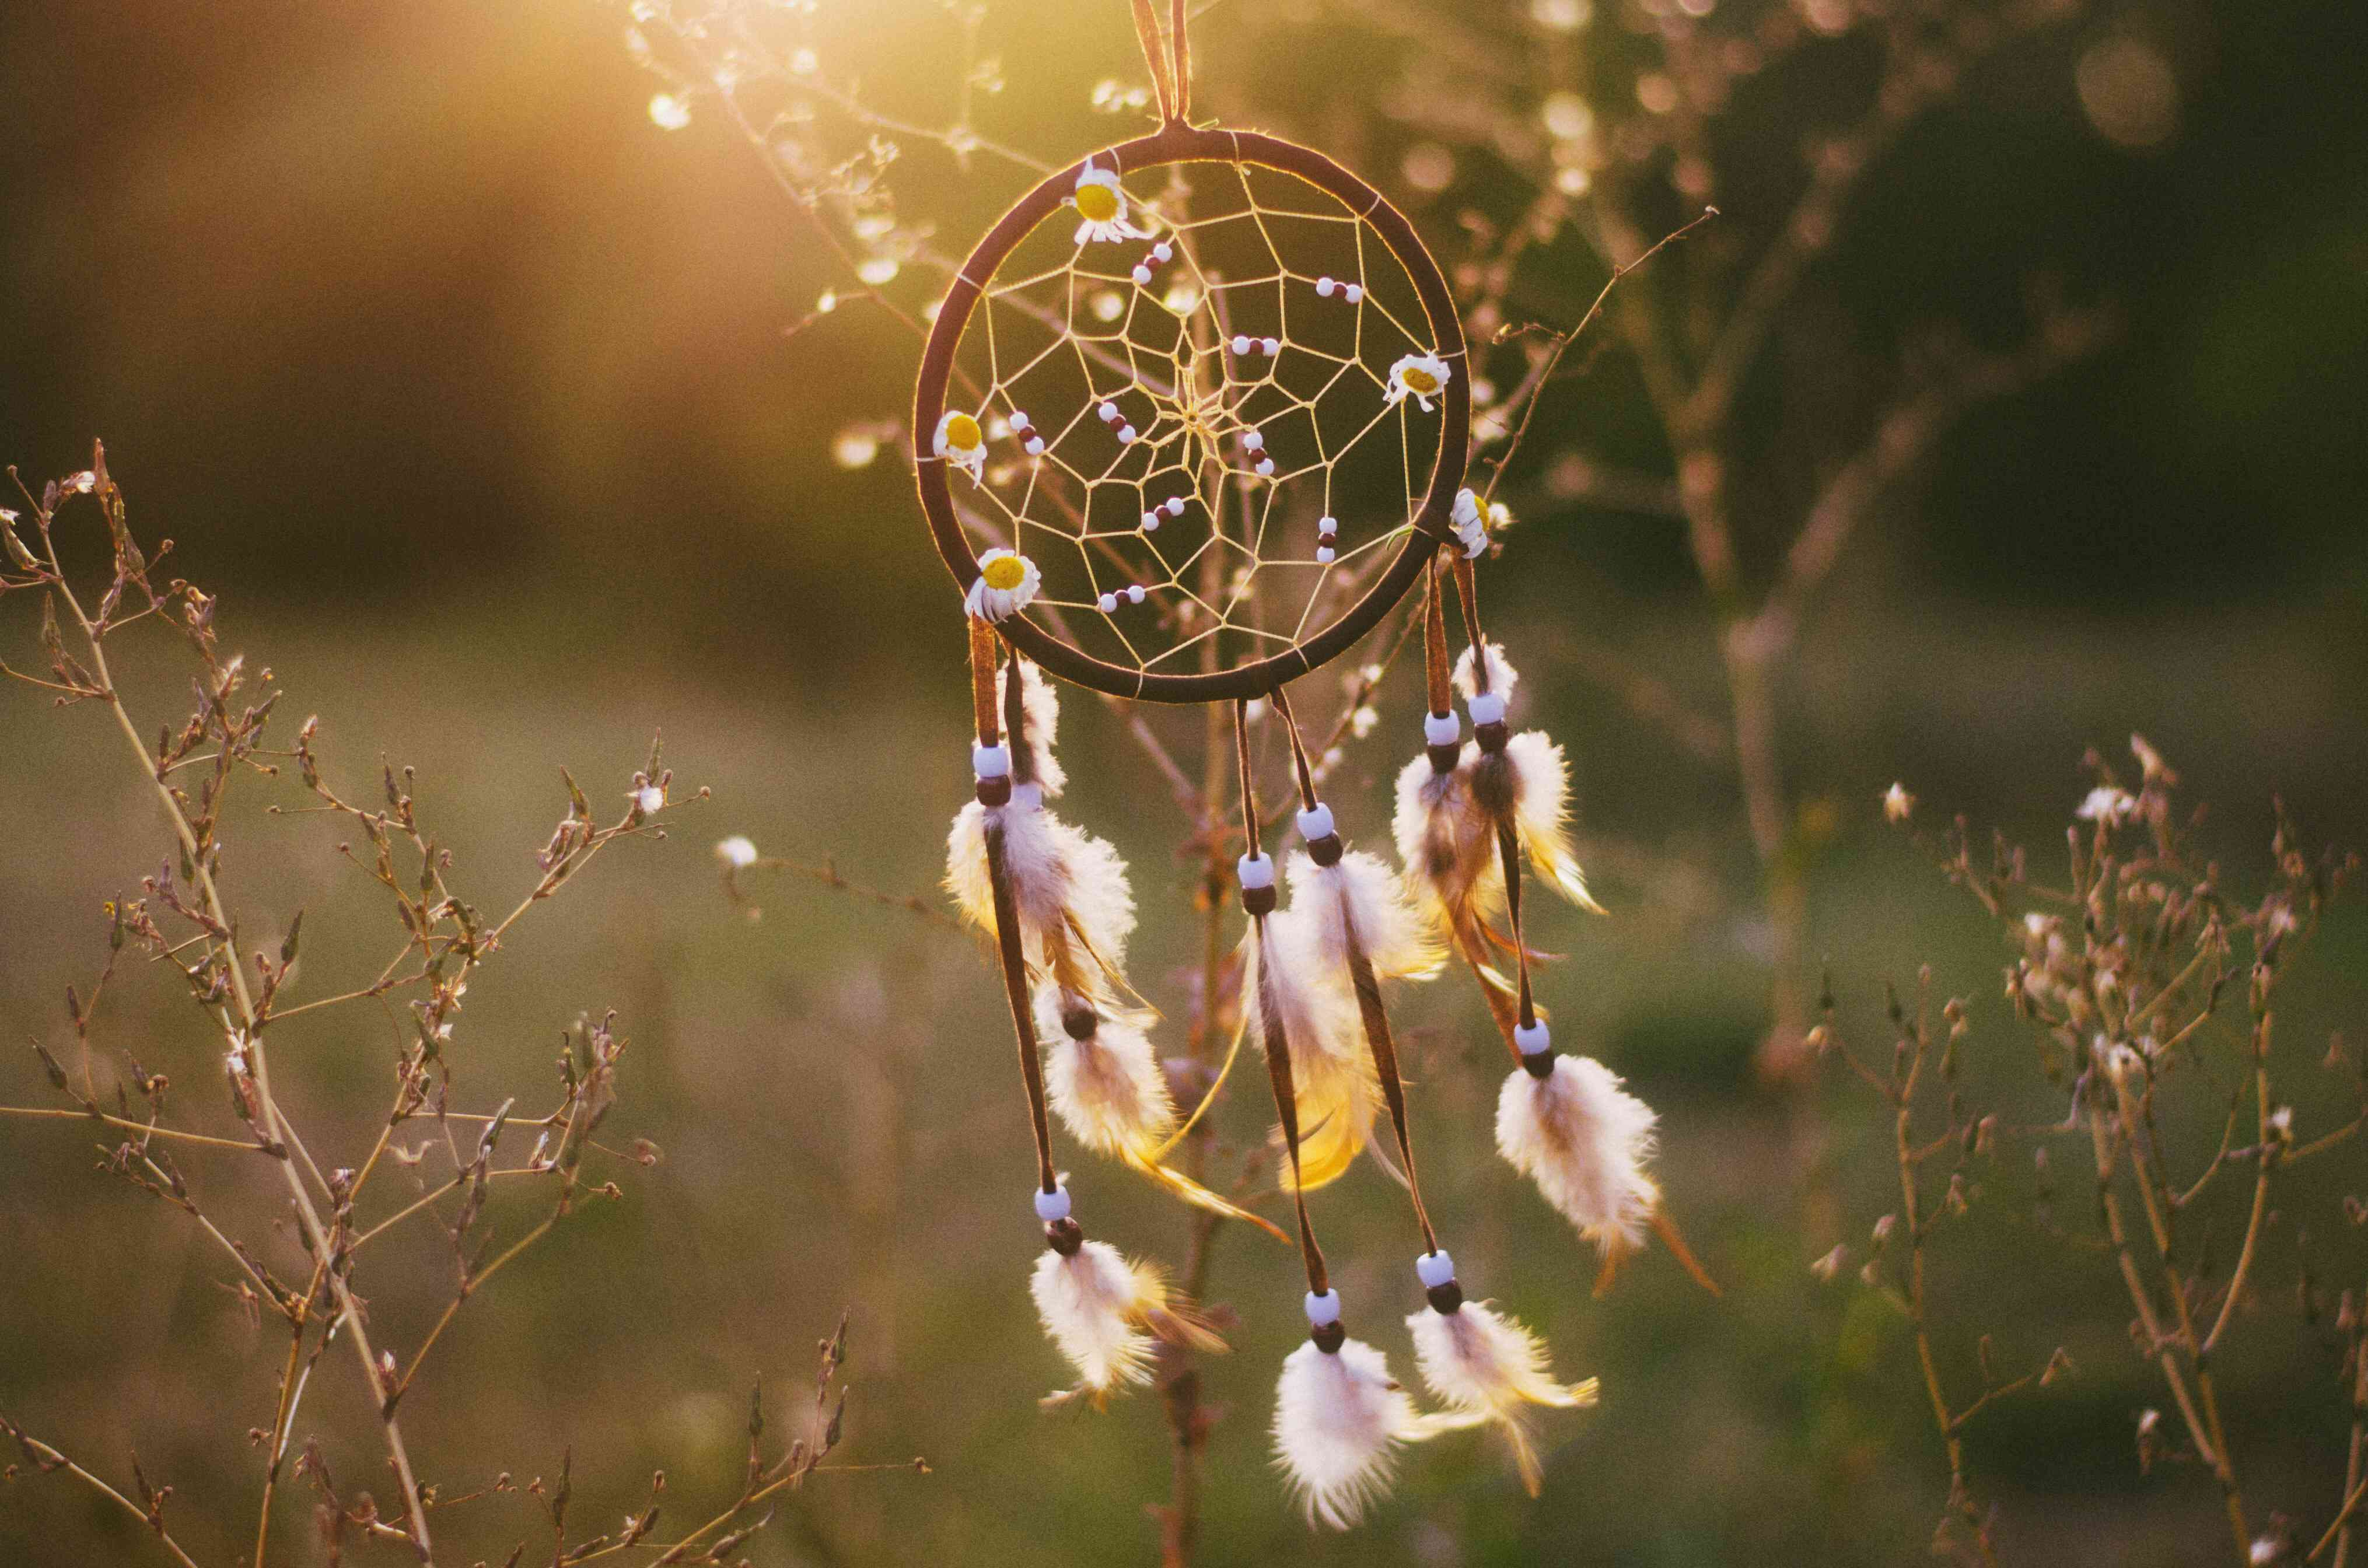 Close-Up Of Dreamcatcher Hanging On Plant